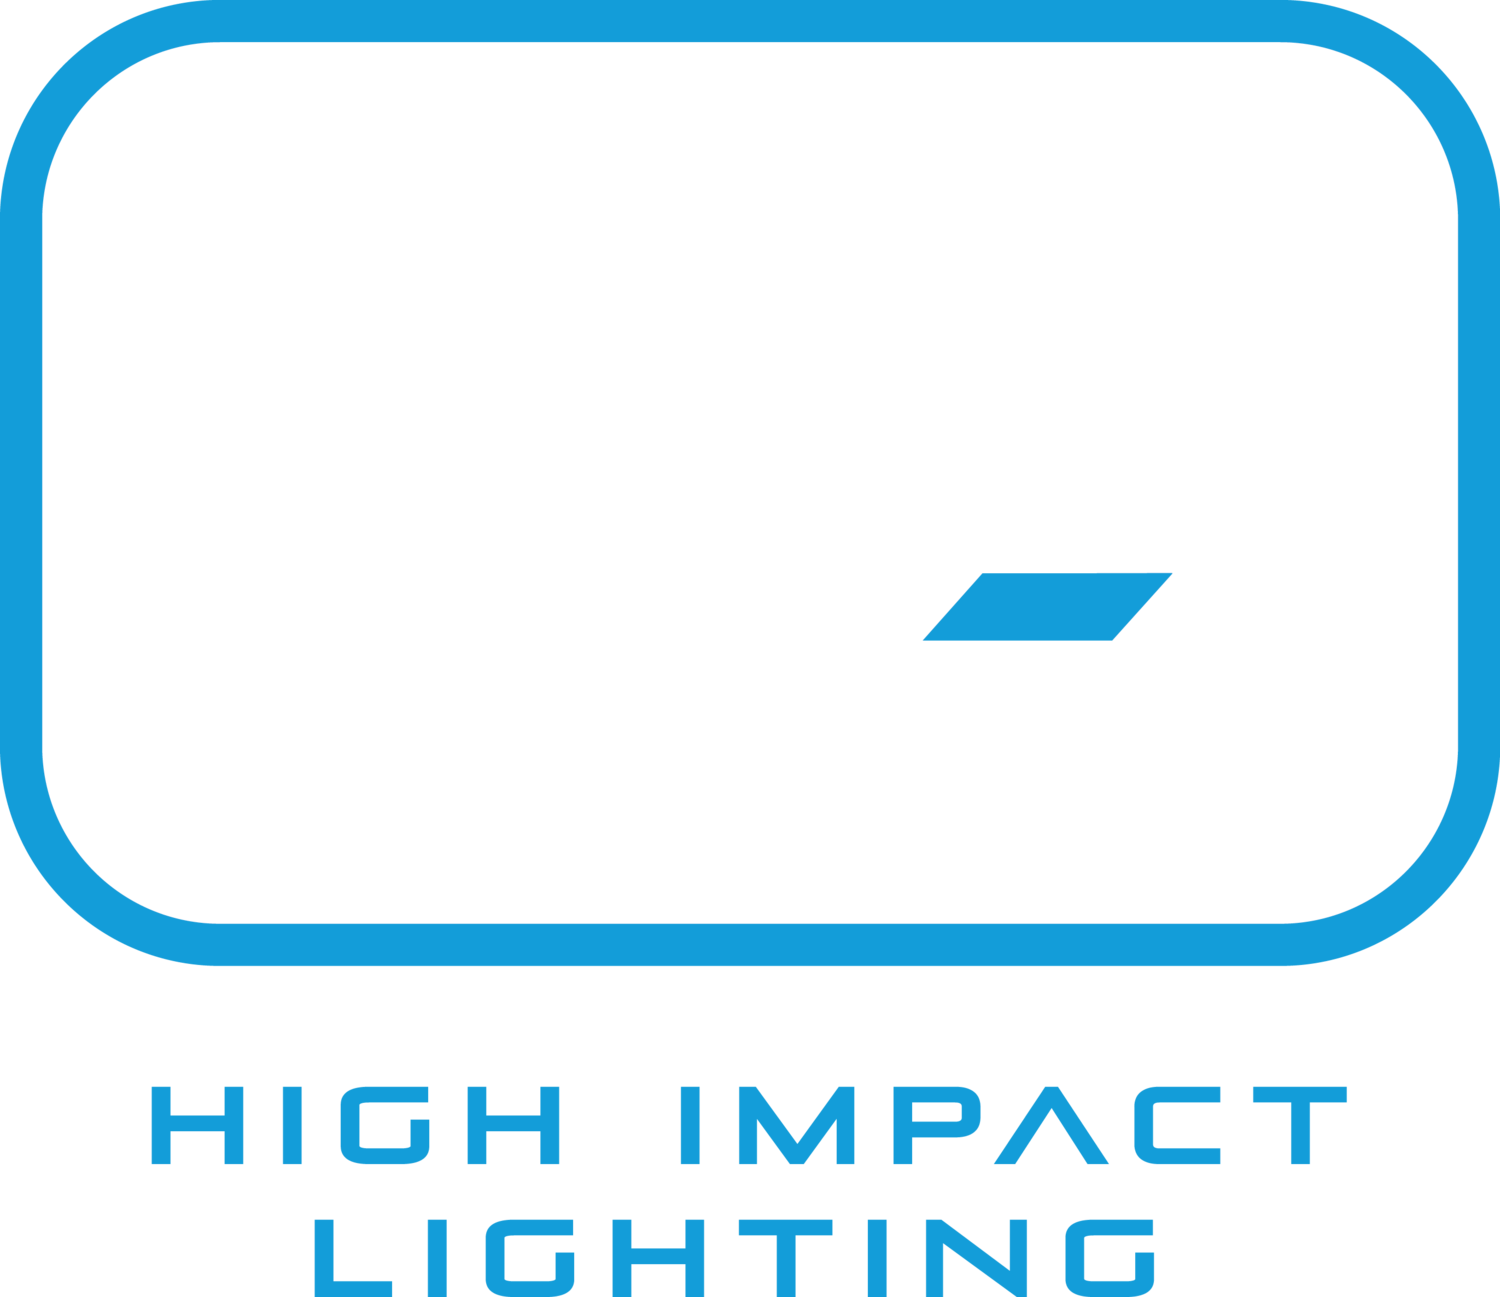 High Impact Lighting